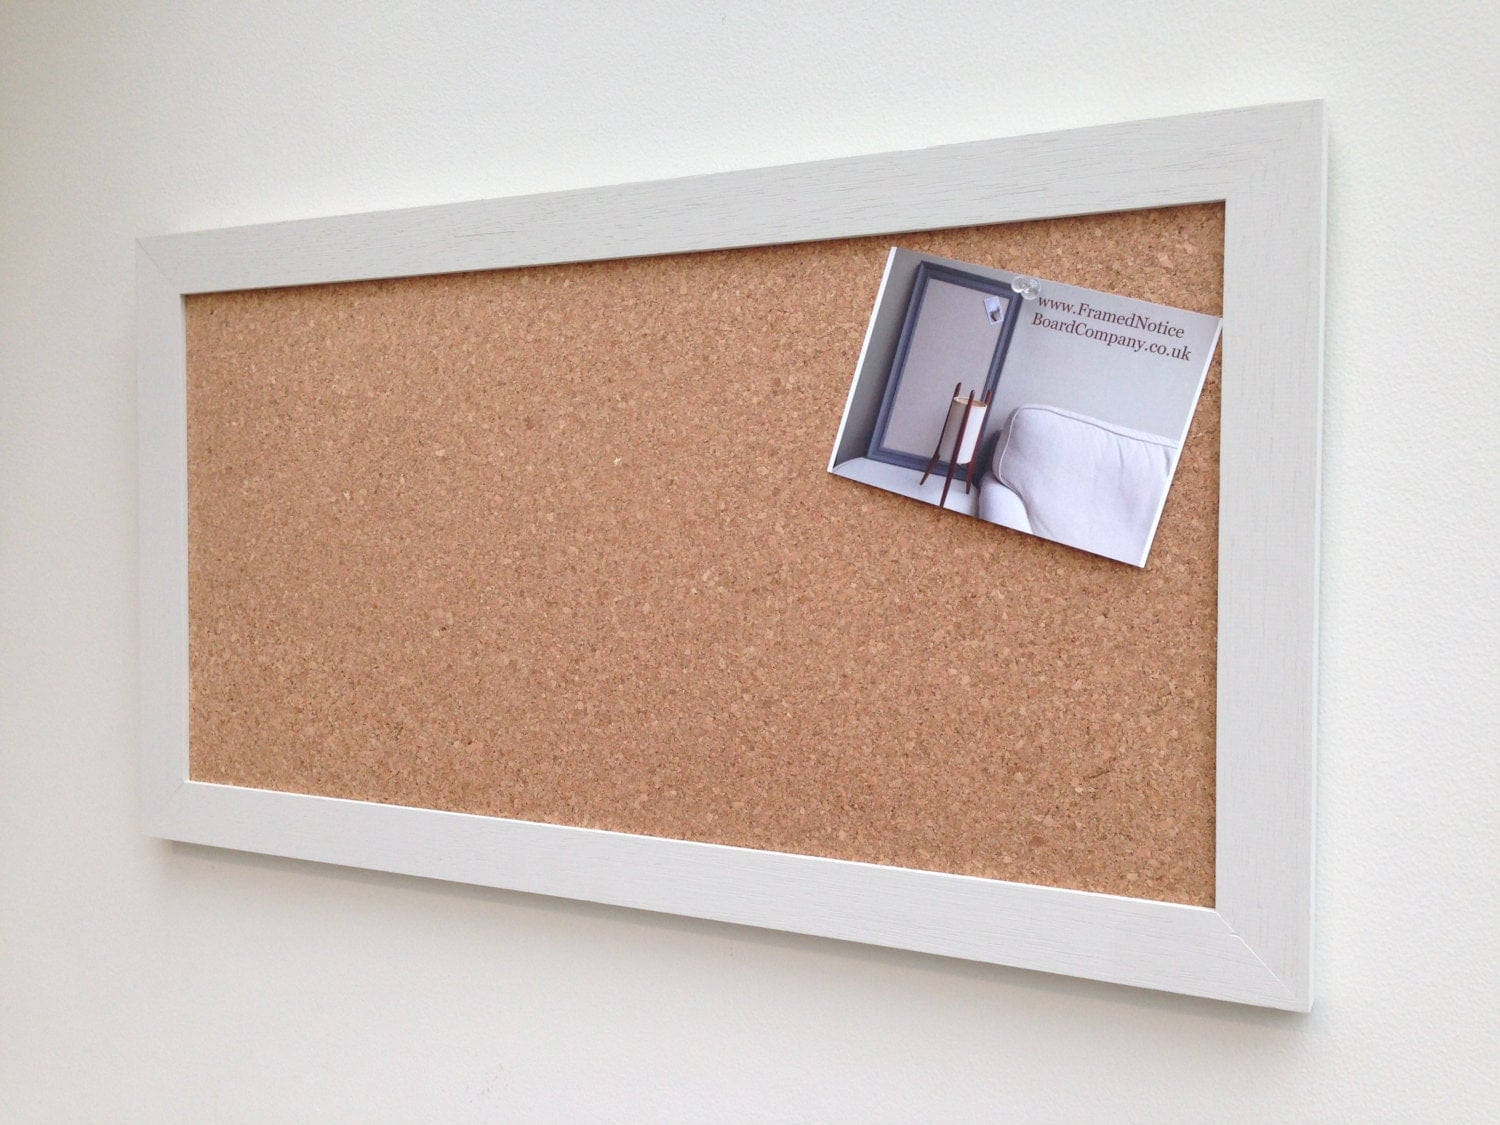 giant cork notice board